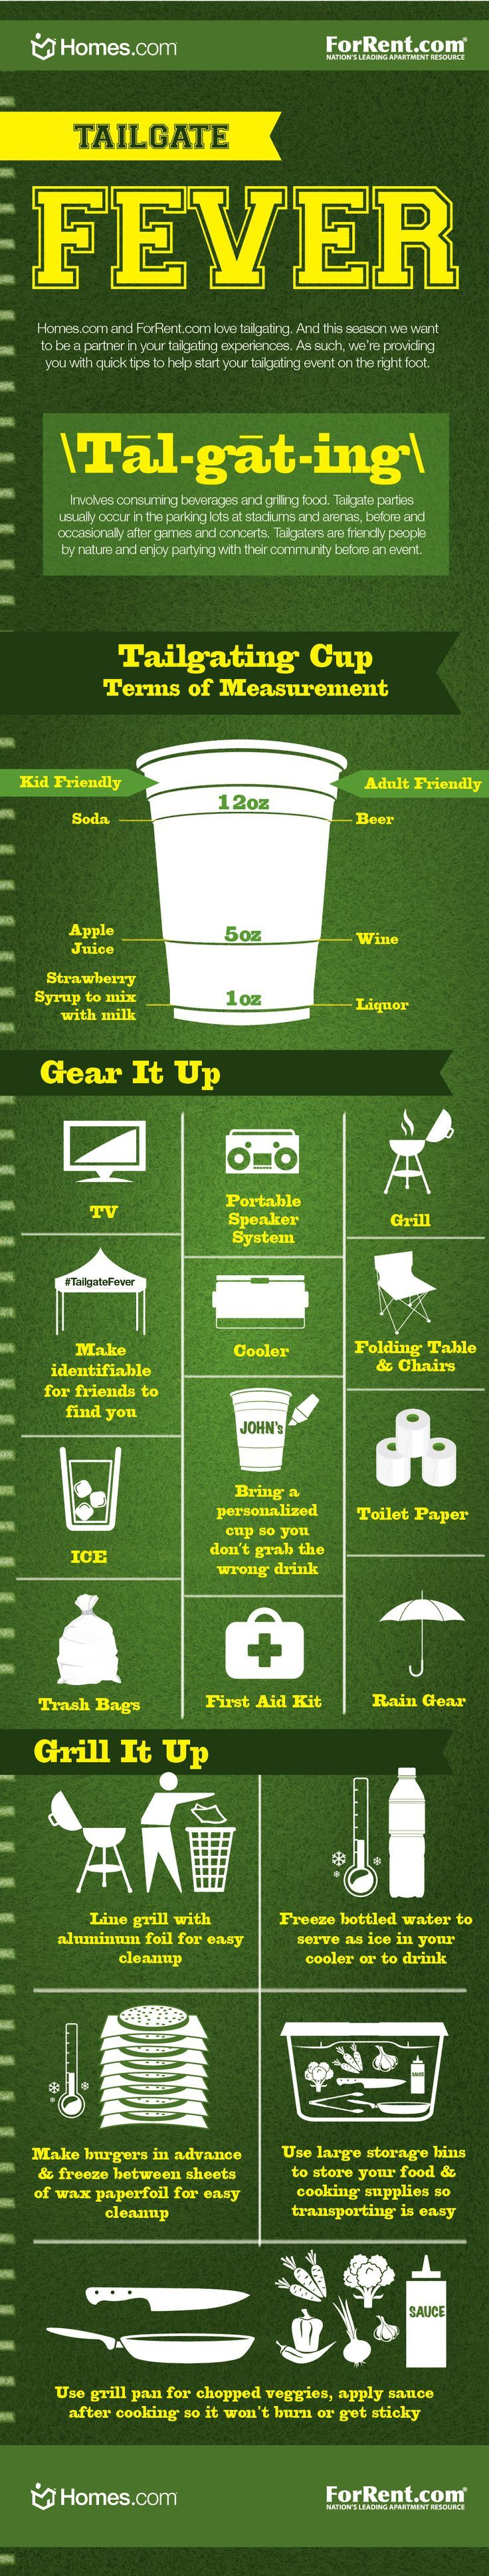 Tailgating Infographic of fun prep and grilling tips! See you at the game! #tailgating #ForRent.com #Homes.com #tailgatingtips #football #concerts #tailgate #grilling http://blog.forrent.com/apt_life/tailgatefever-infographic